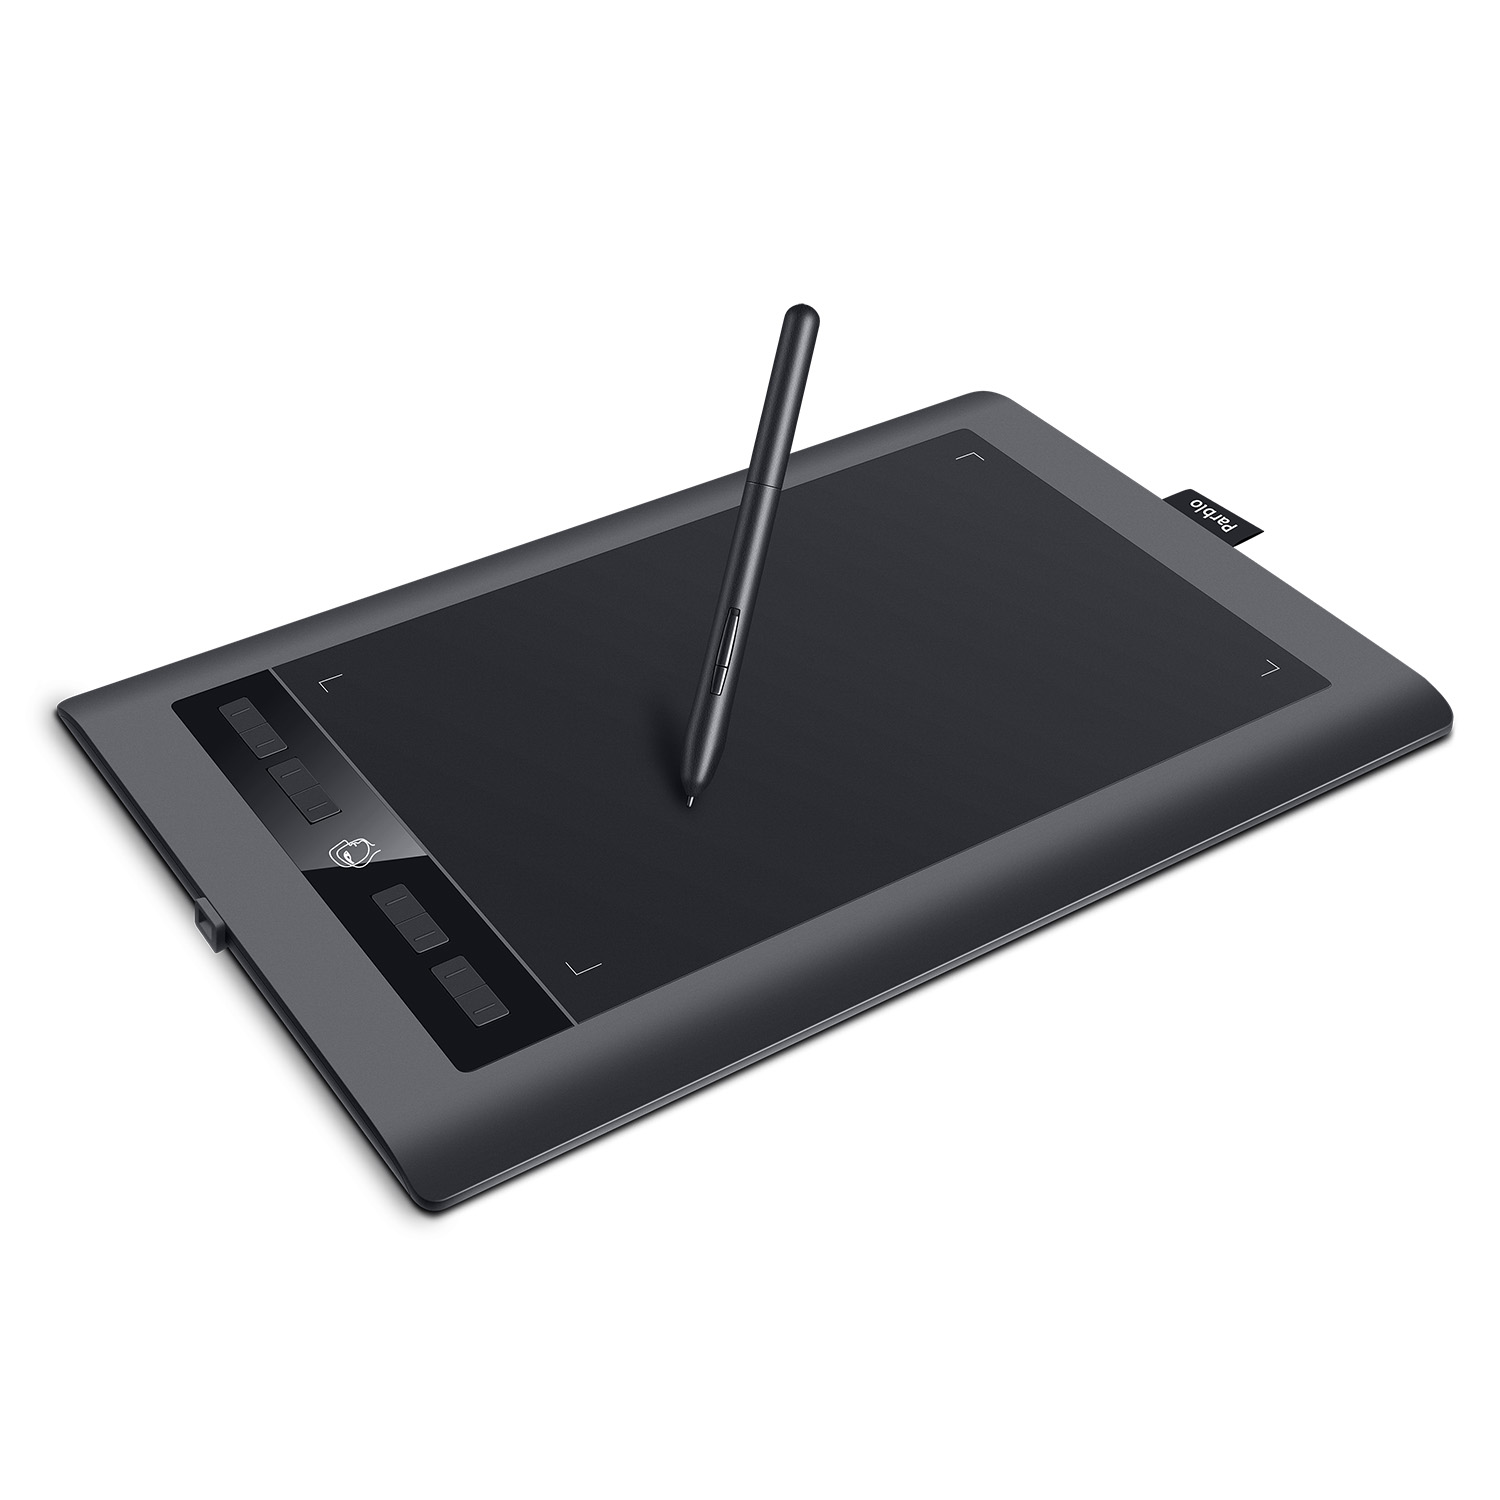 Image 4 - Original Parblo A610S/A610 Plus Graphic Tablet 8192 Levels Digital Drawing Tablet Battery Free Pen Tablets for Windows & Mac-in Digital Tablets from Computer & Office